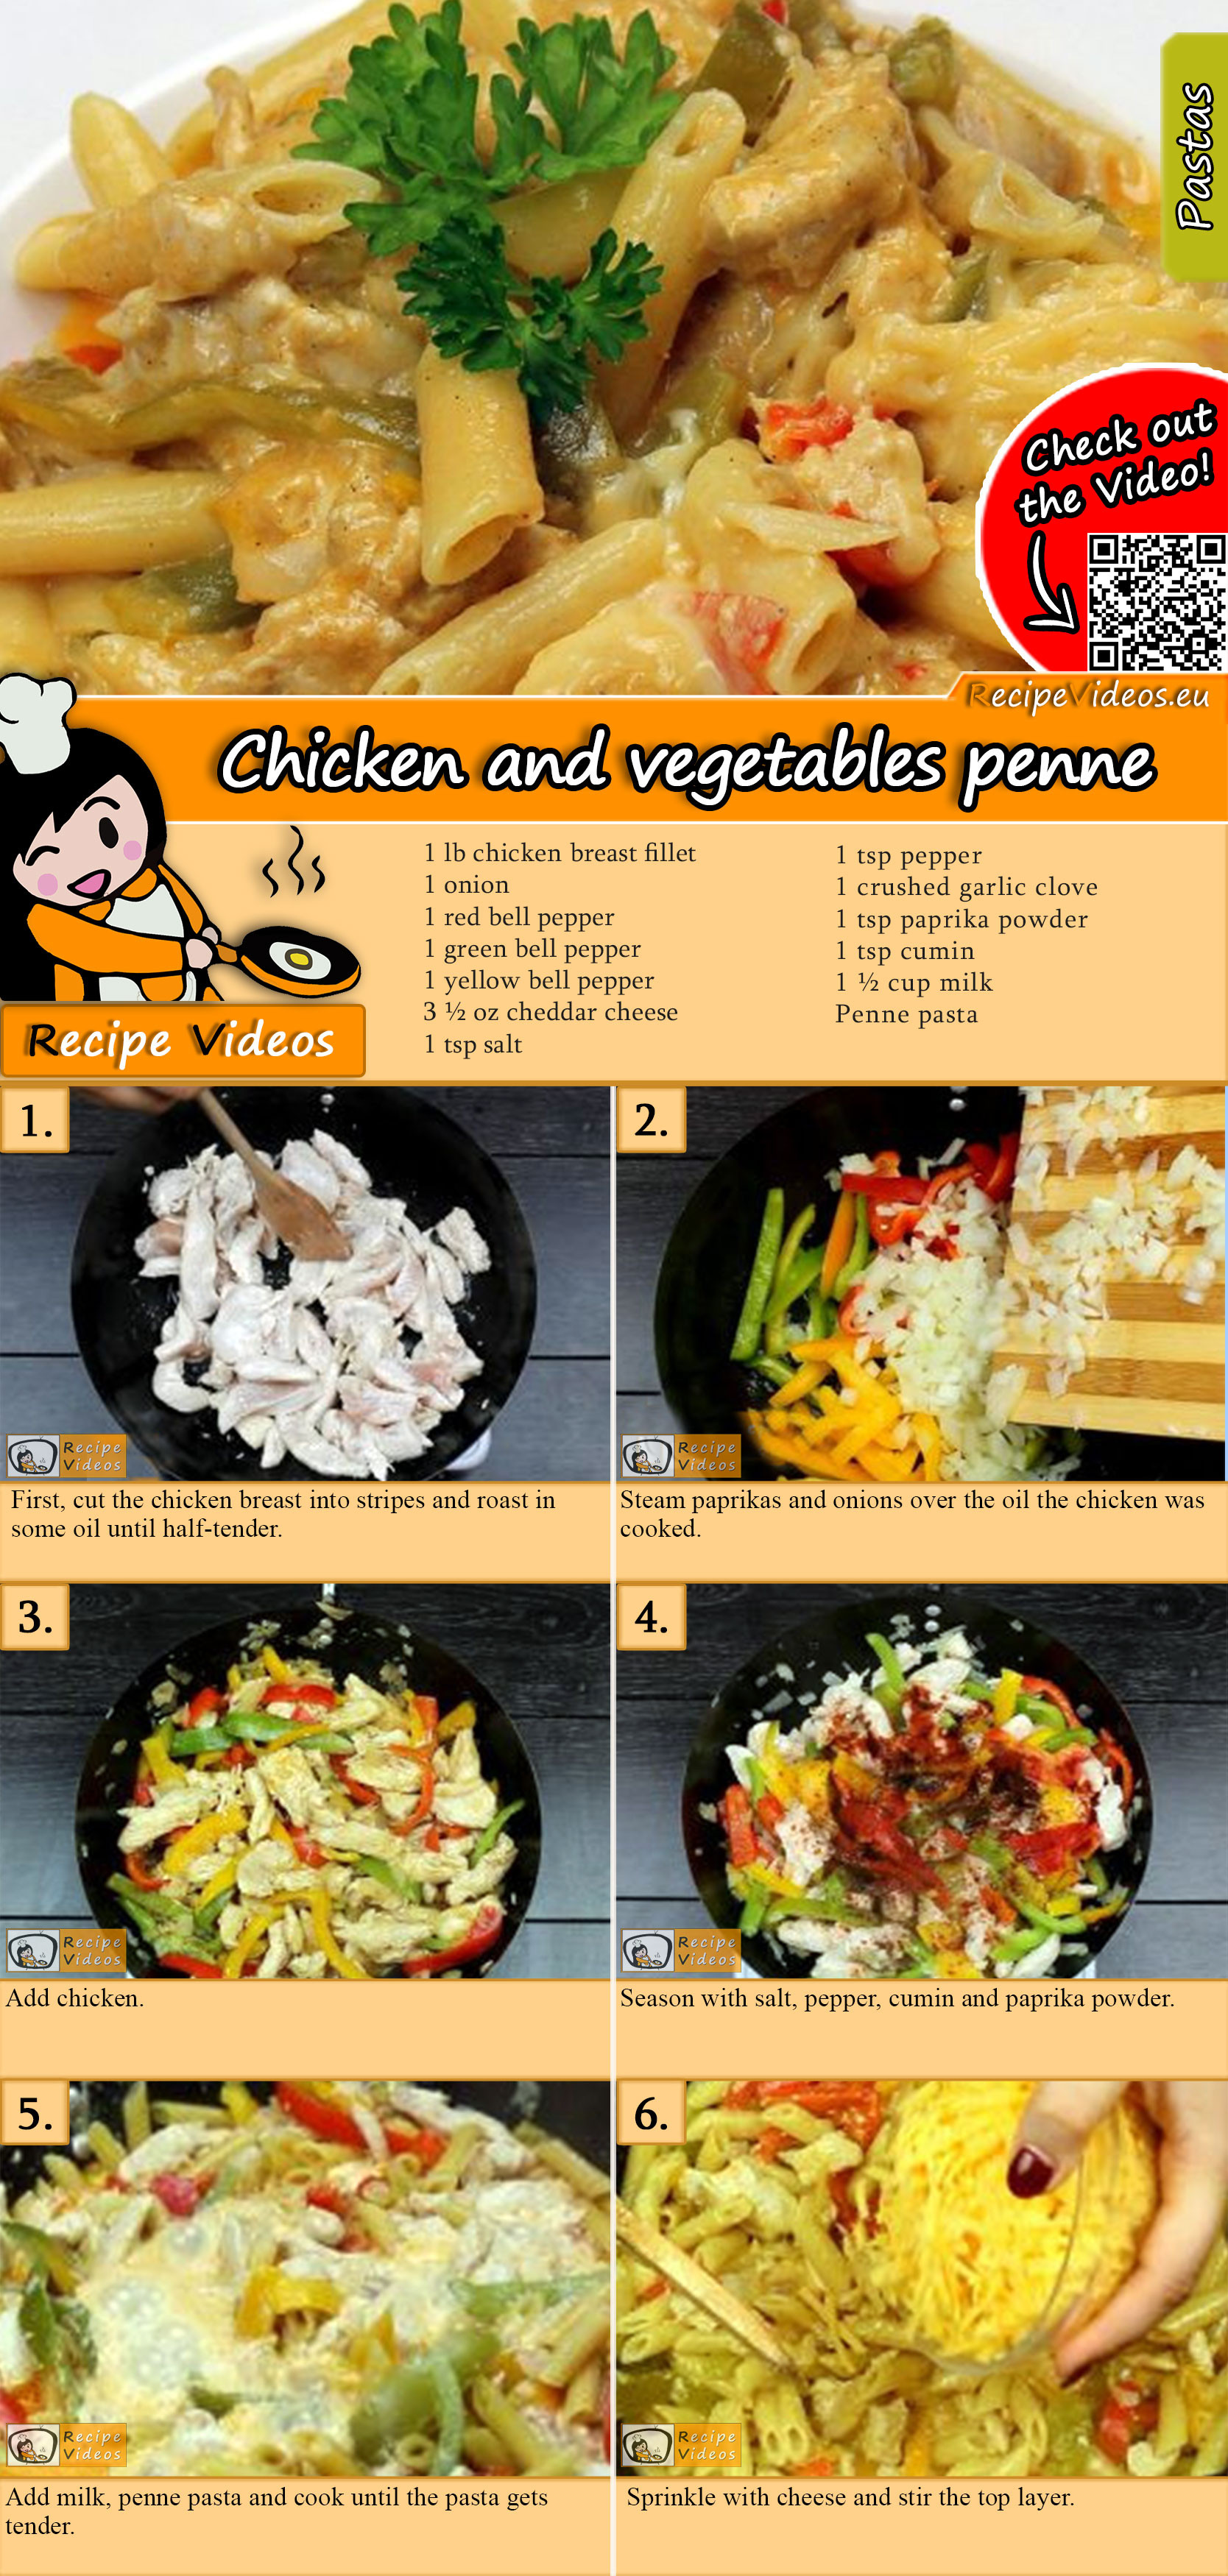 Chicken and vegetables penne recipe with video